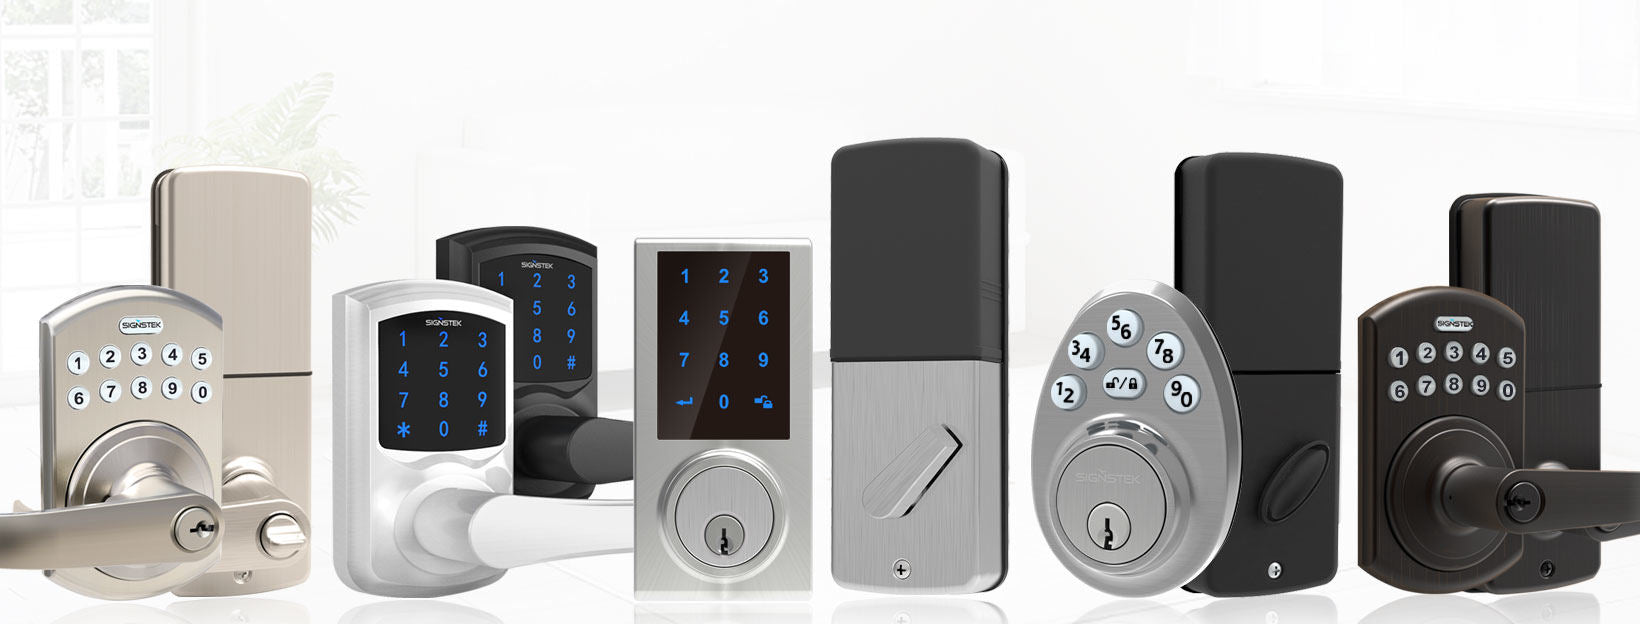 digital door locks